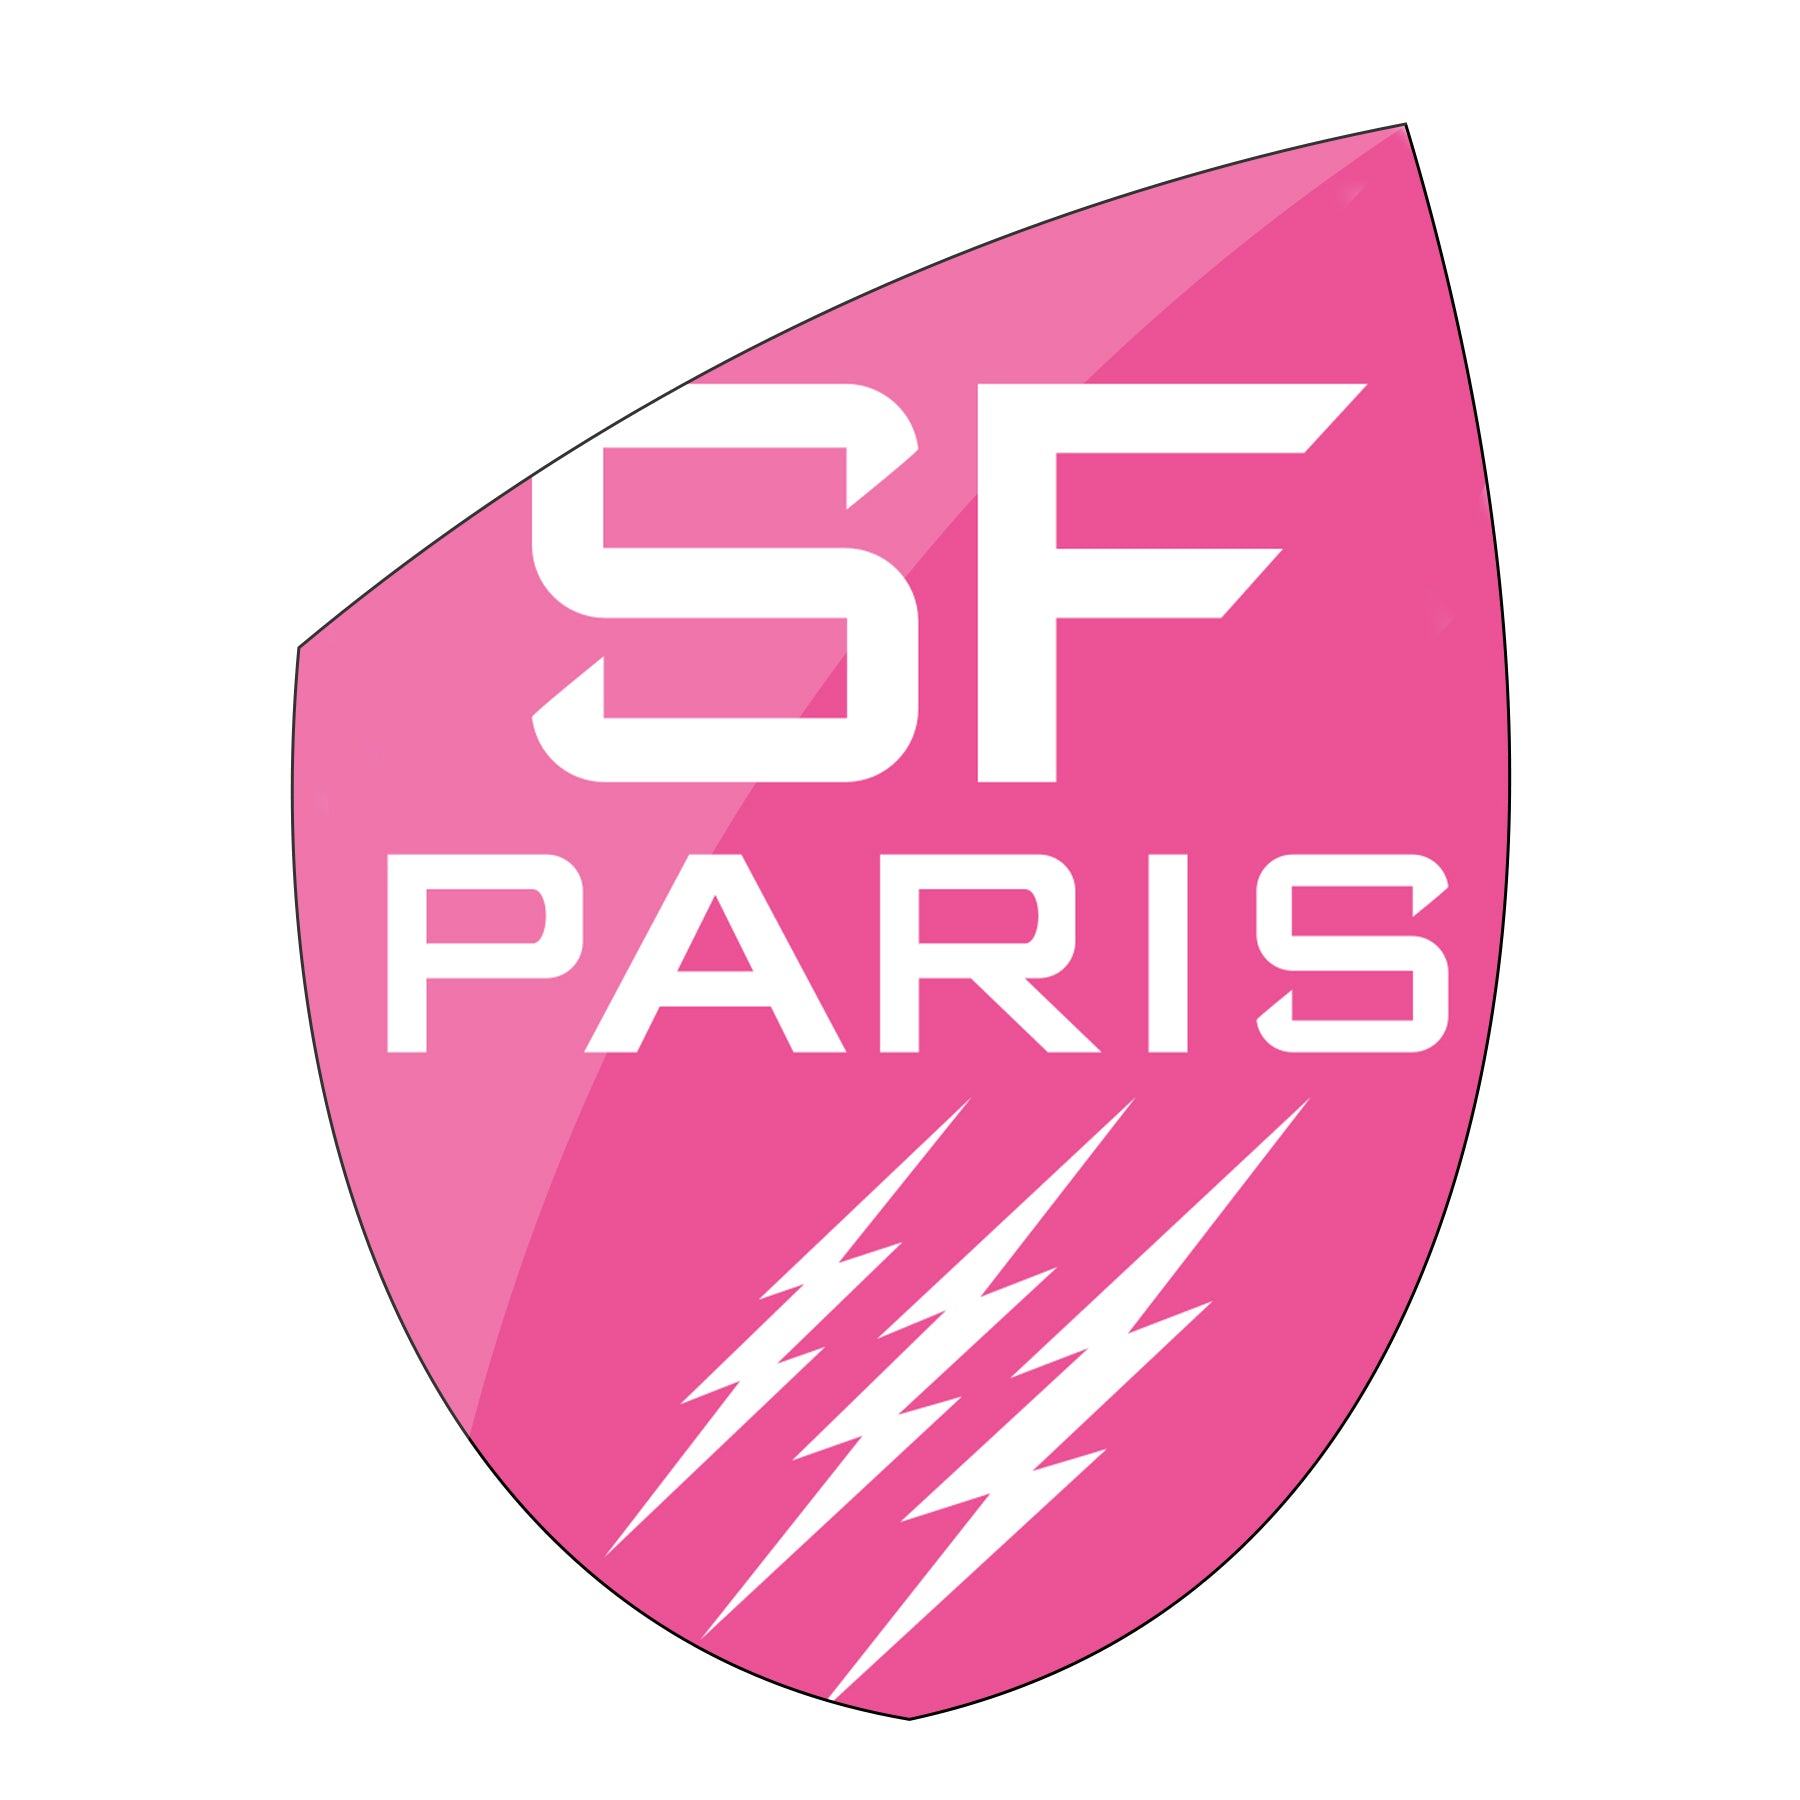 Exclusive Stade Francis Rugby Gear